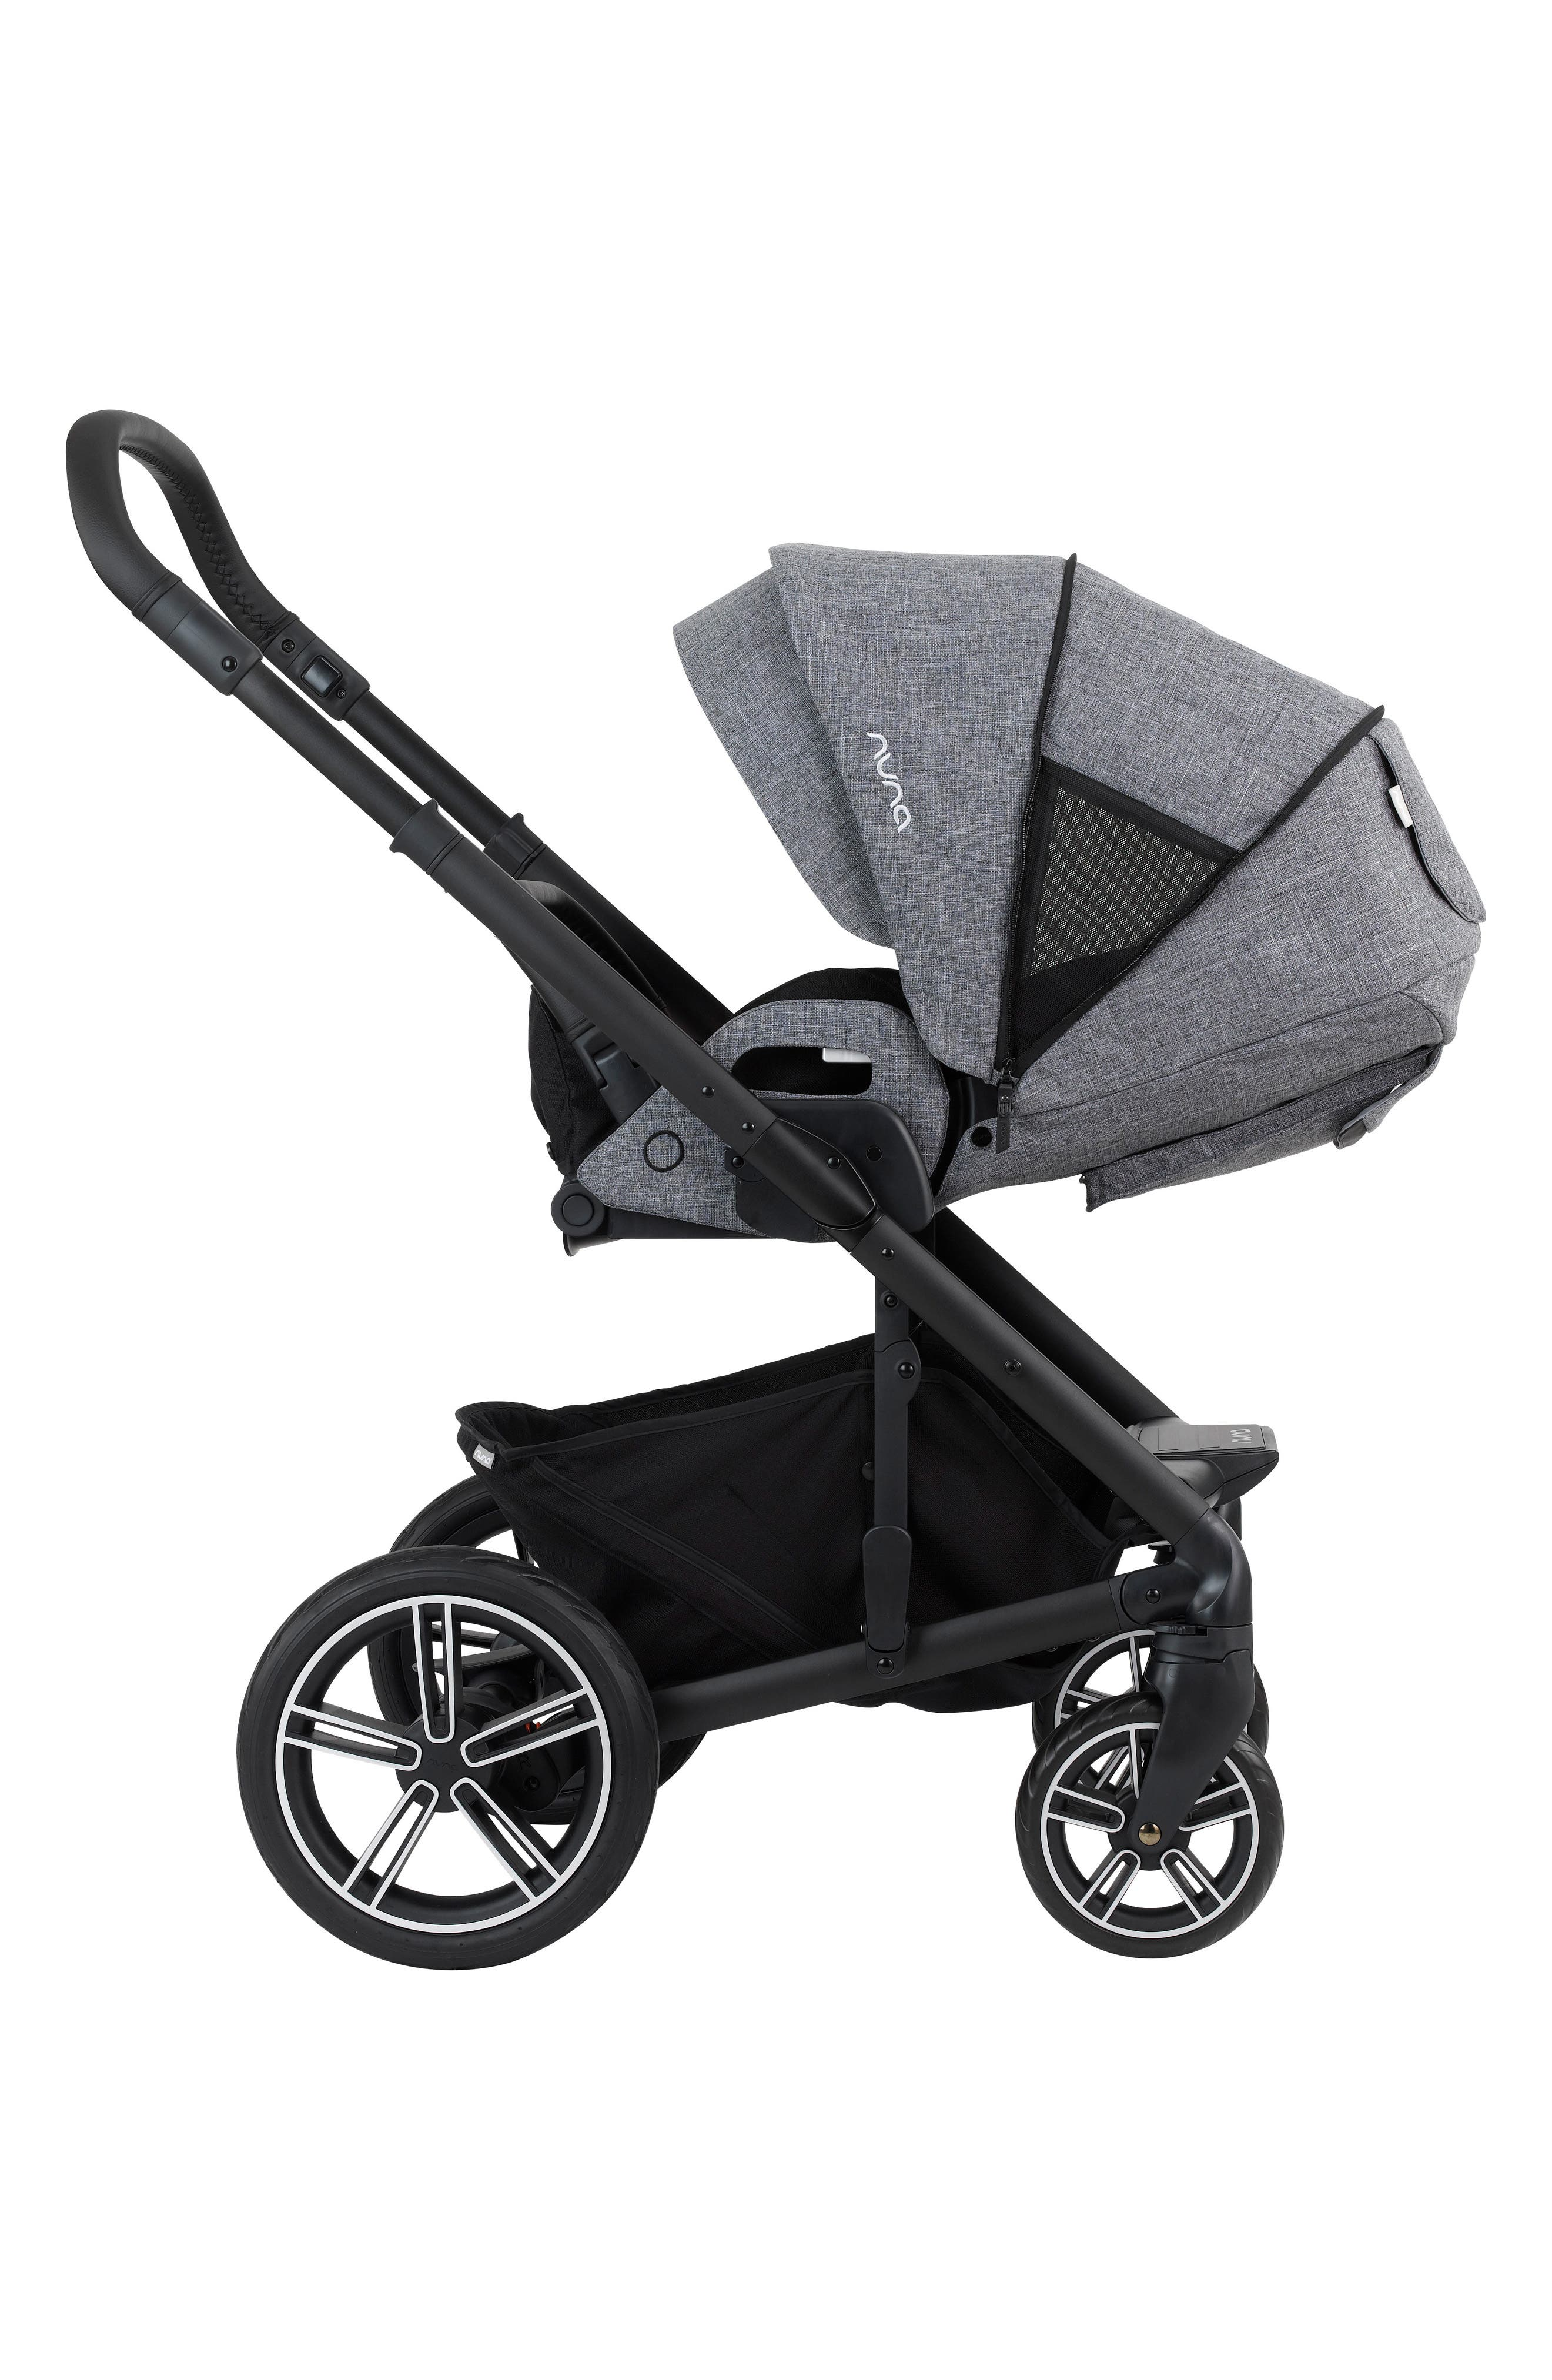 MIXX<sup>™</sup> 2 Stroller System & PIPA<sup>™</sup> Car Seat Set,                             Alternate thumbnail 5, color,                             020